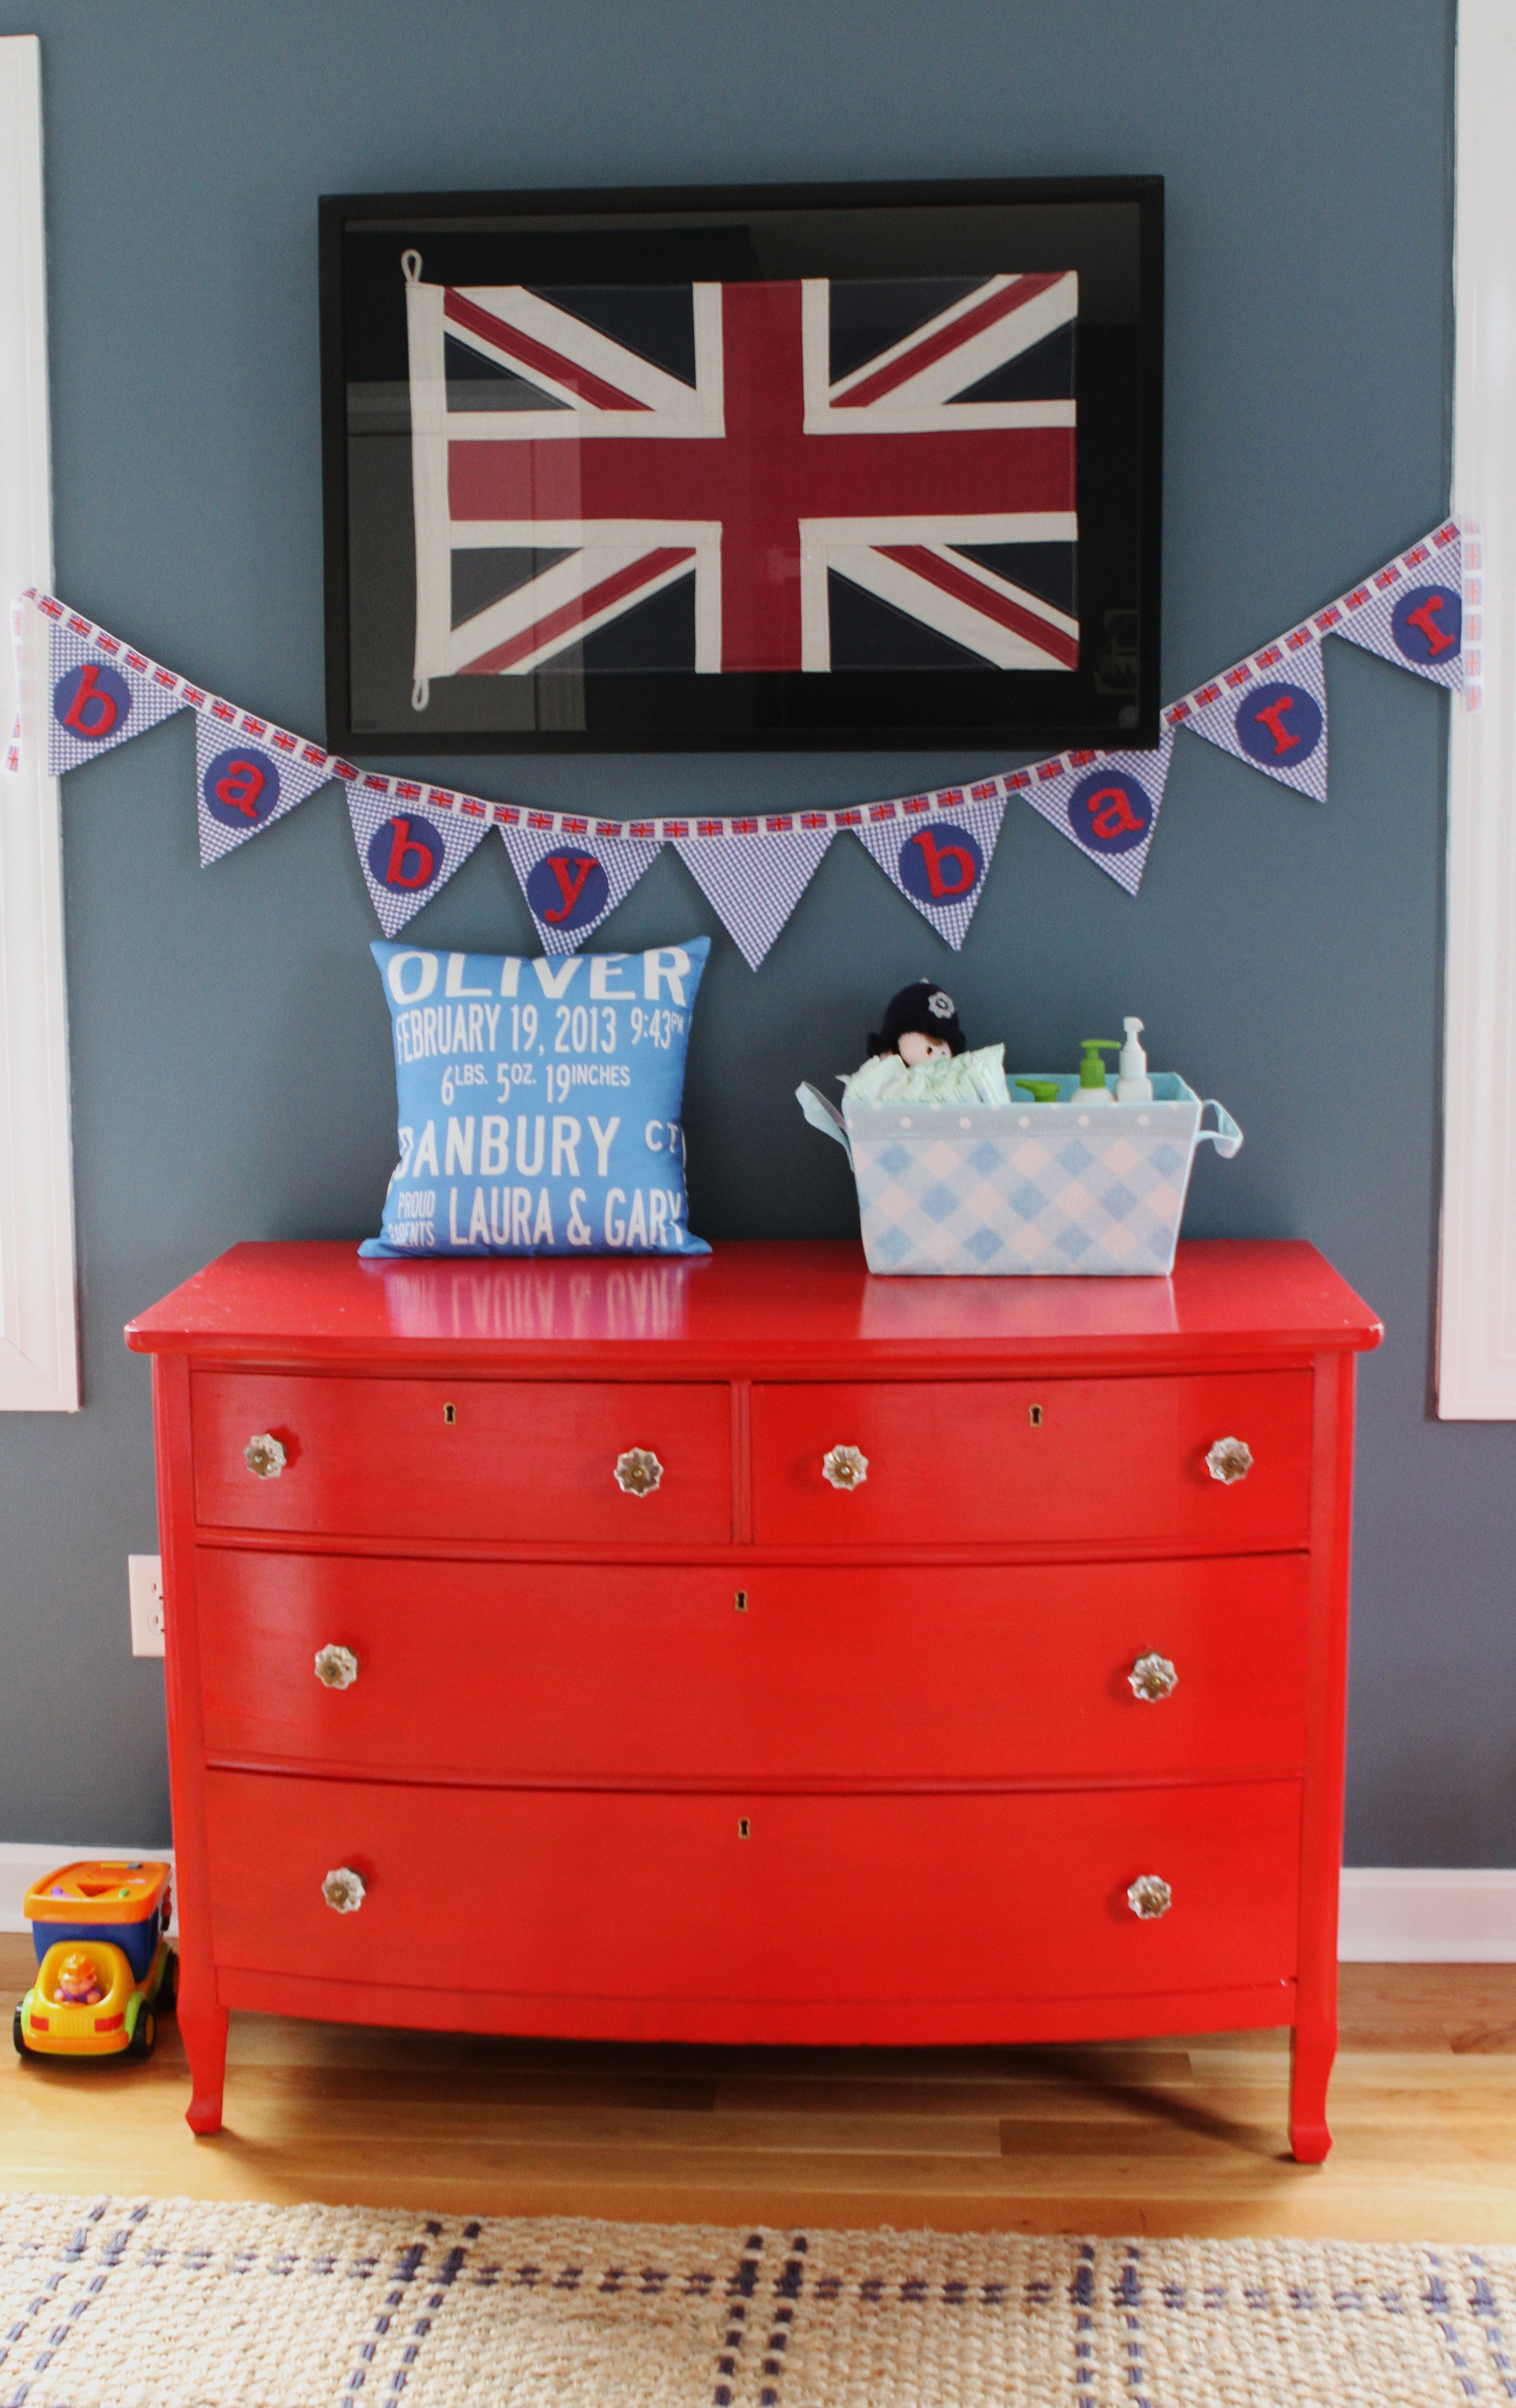 A British Themed Nursery Fit For a Little Brit | Londres